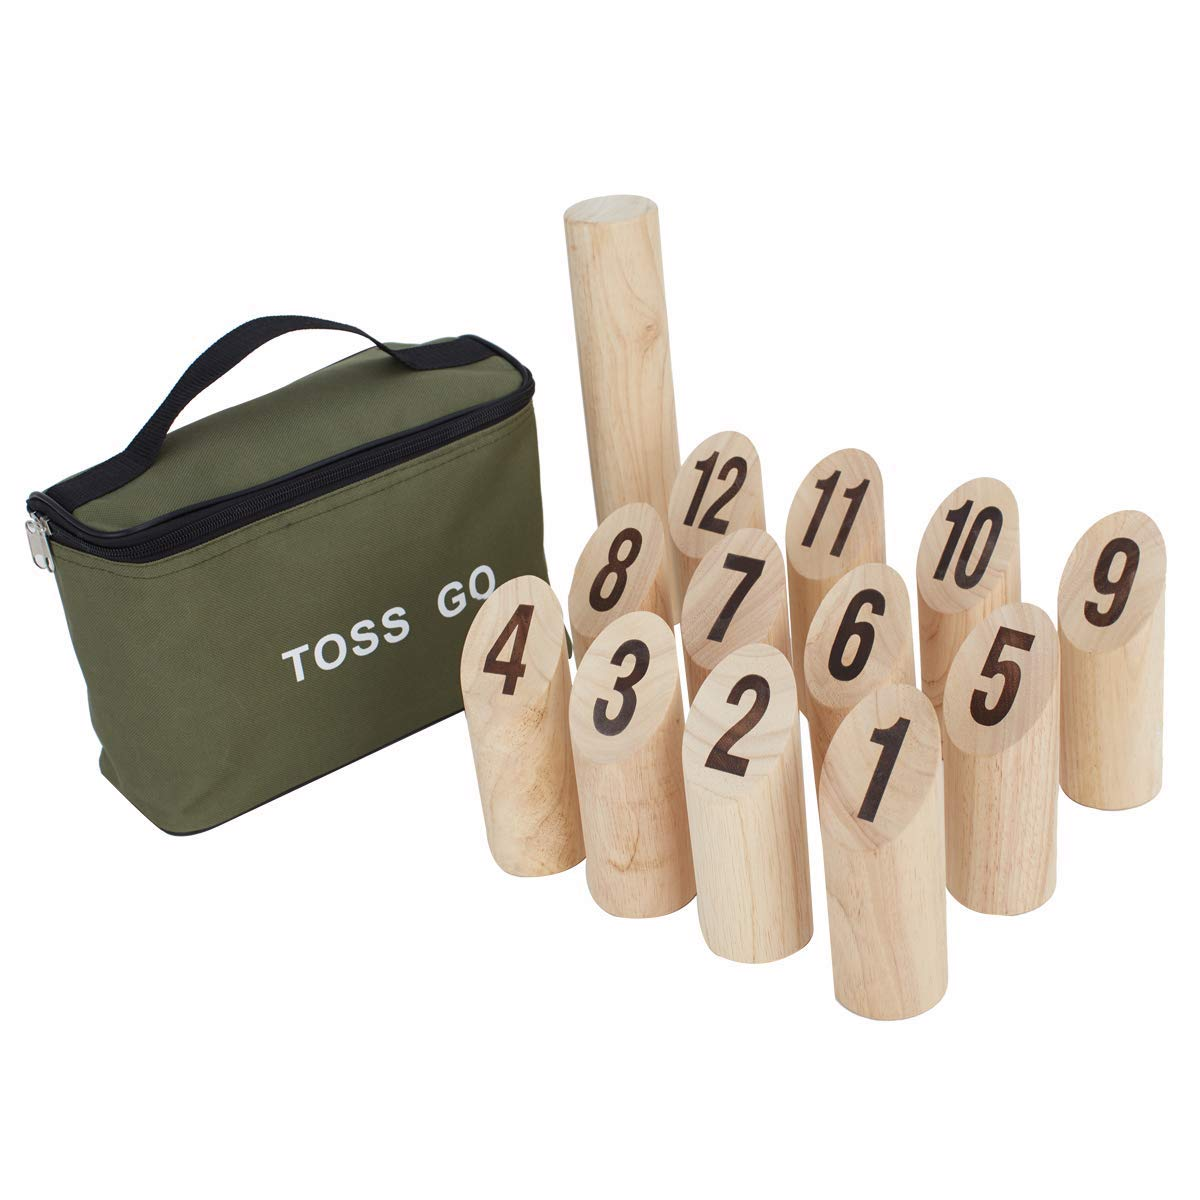 Toss Go Molkky Outdoor Sport- Mölkky Rubberwood Skittle Scatter Numbers Kubb with Carrying Bag - Outdoor Yard and Lawn Games for Kids and Adults - Mölkky molky mollky molkki molki by LAWN TIME